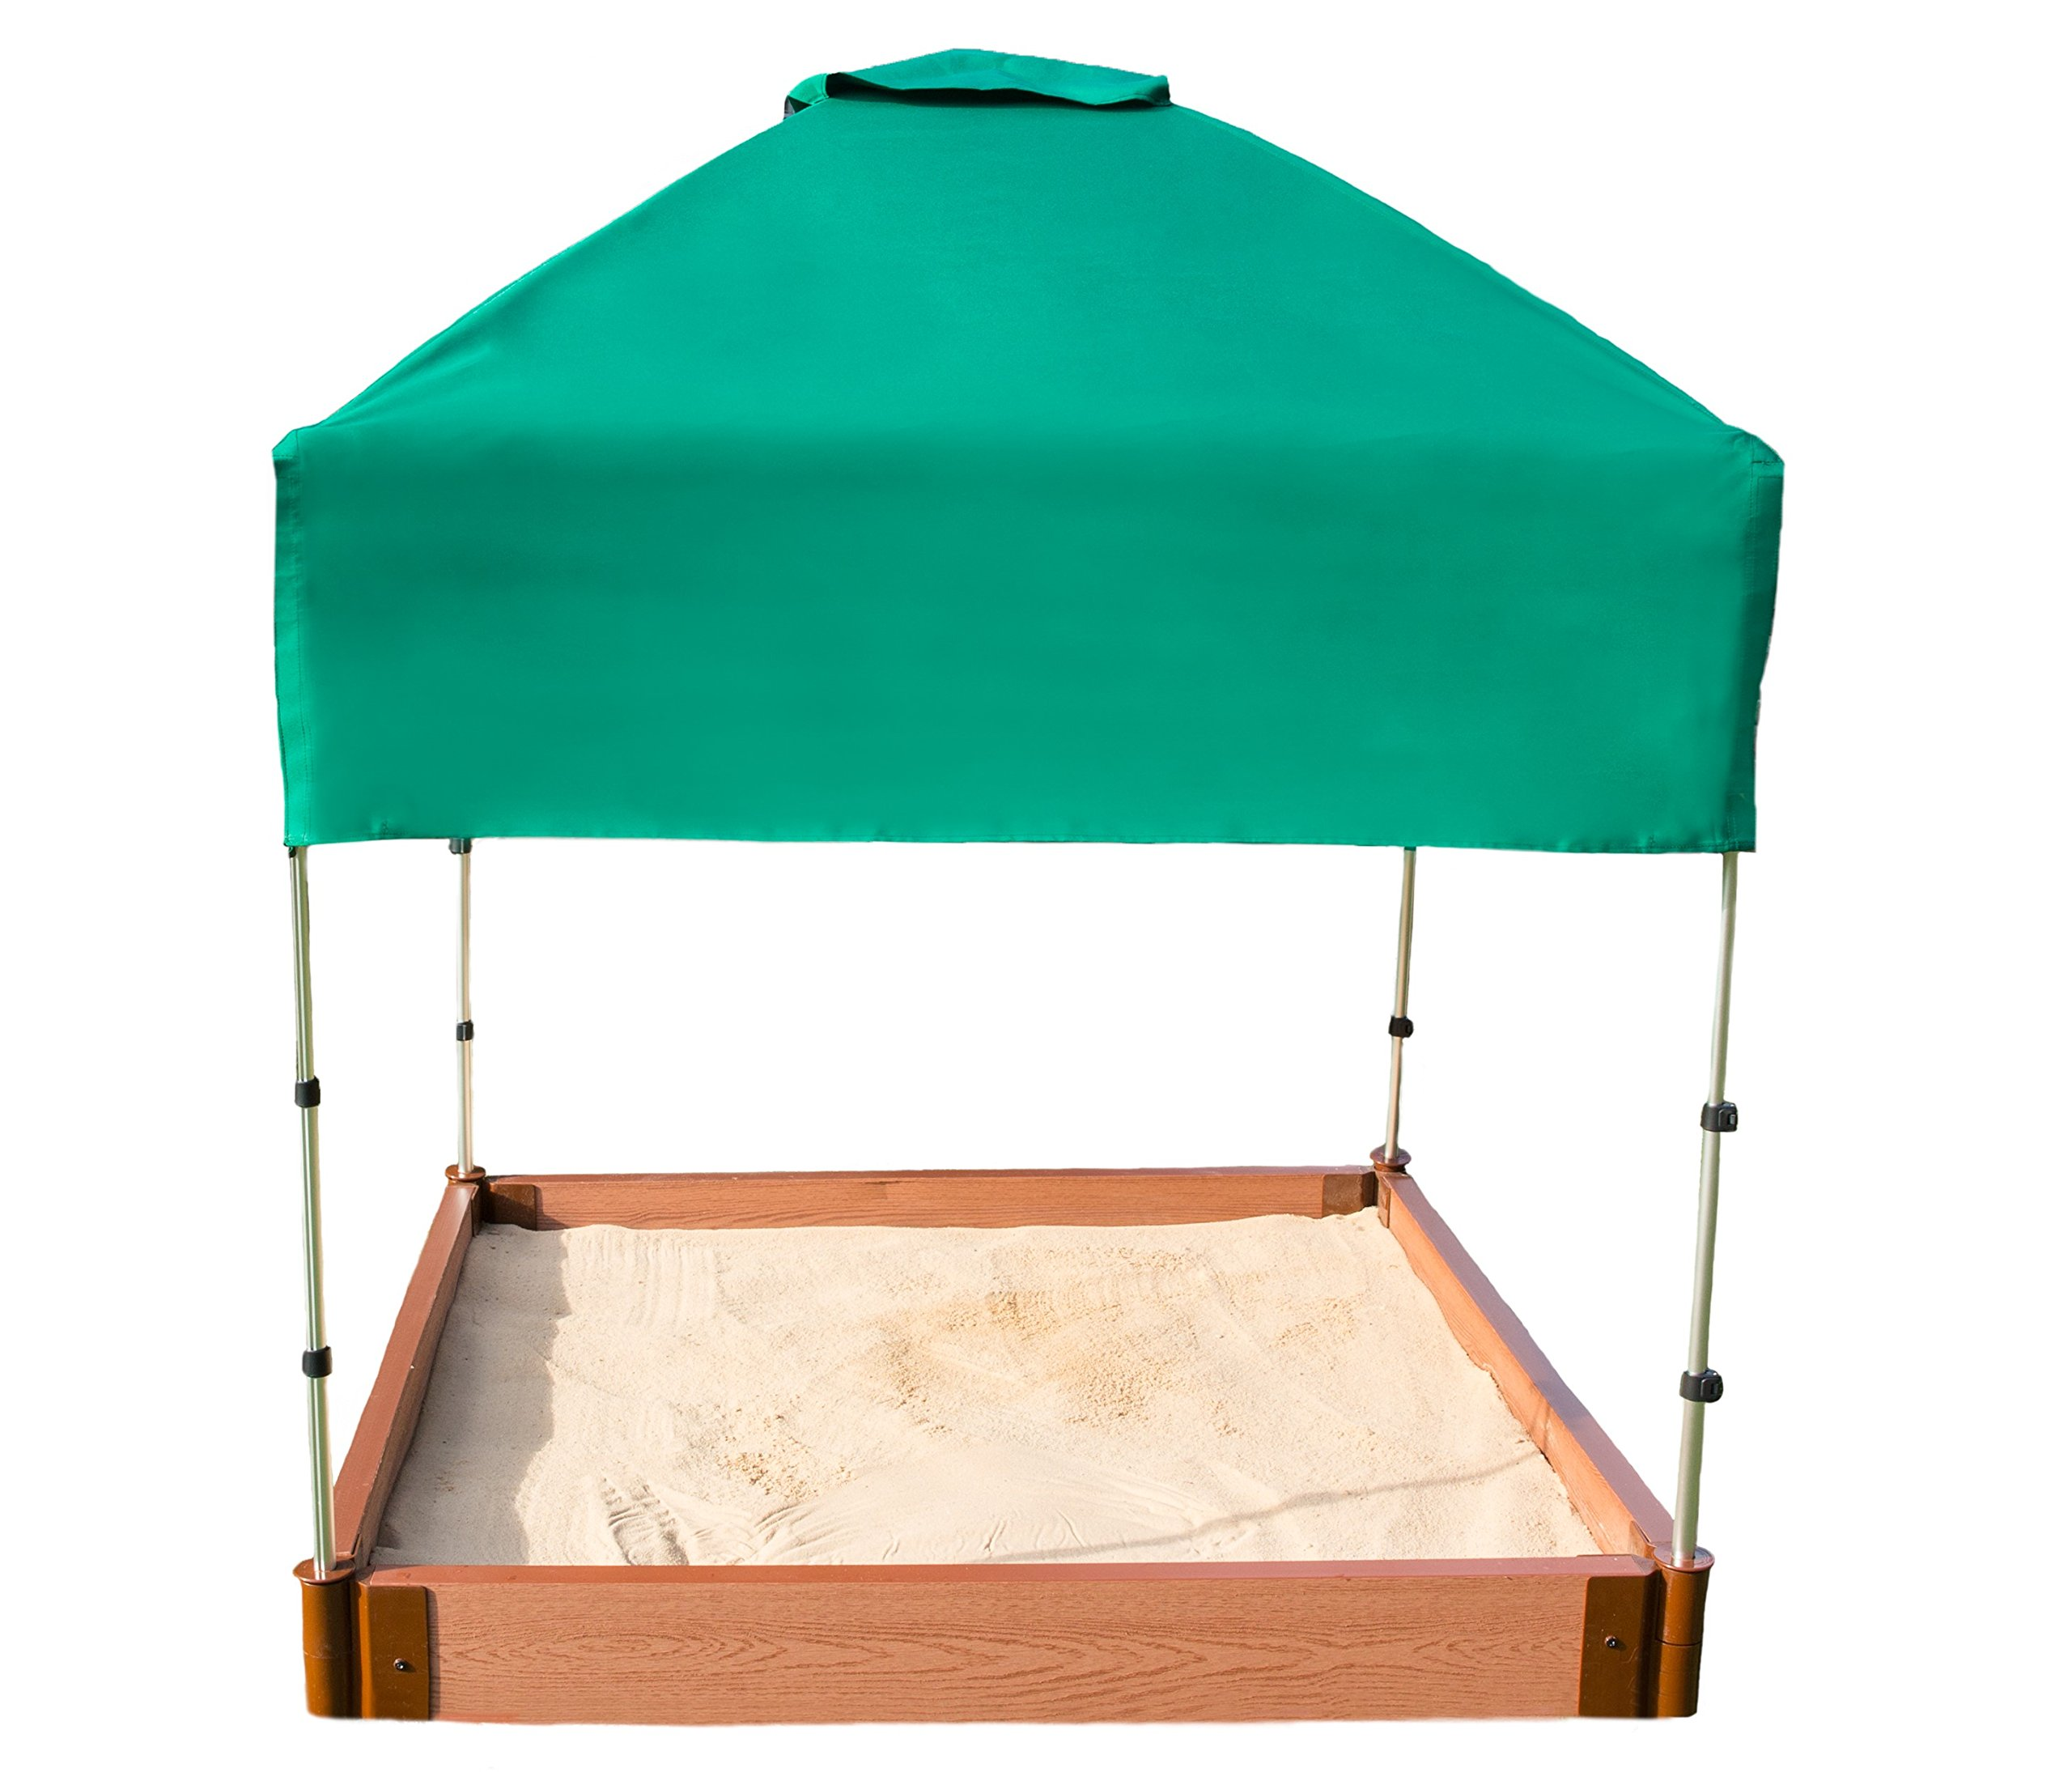 Frame It All Two'' Series 4ft. x 5.5in. Composite Square Sandbox Kit with Canopy/Cover by Frame It All